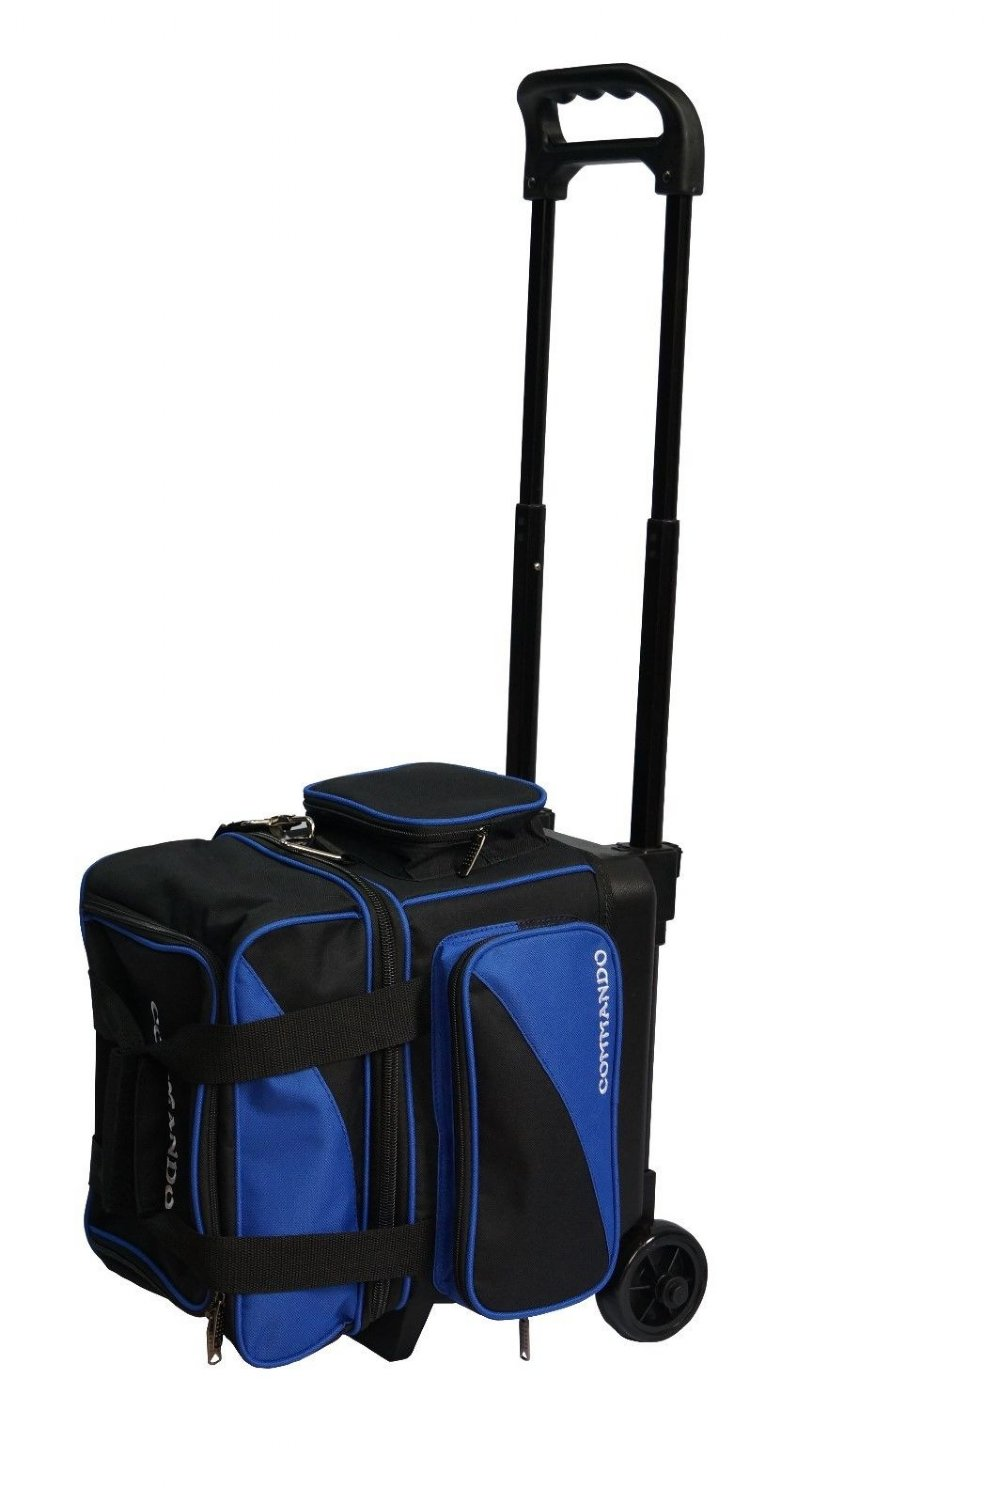 The Commando 1 Ball Single Roller Bowling Bag In Blue Black Free Shipping